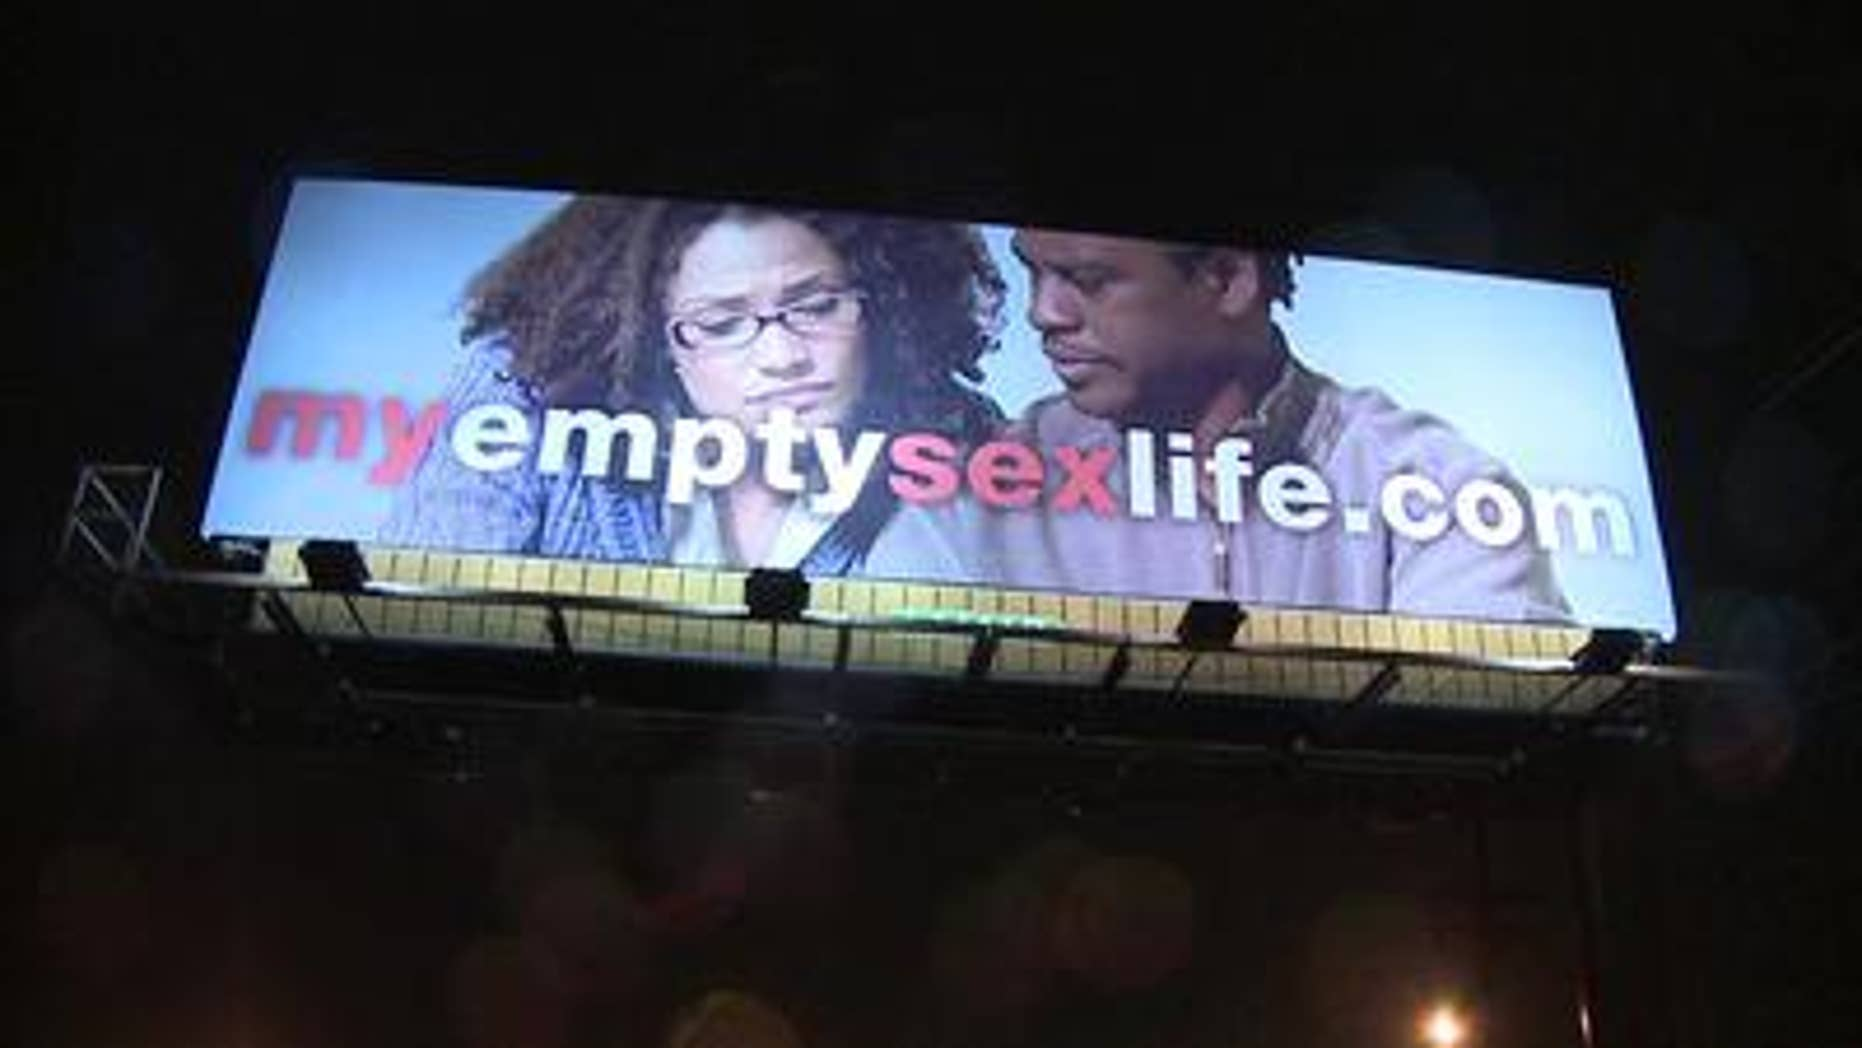 An Indiana church is behind the myemptysexlife.com billboards.